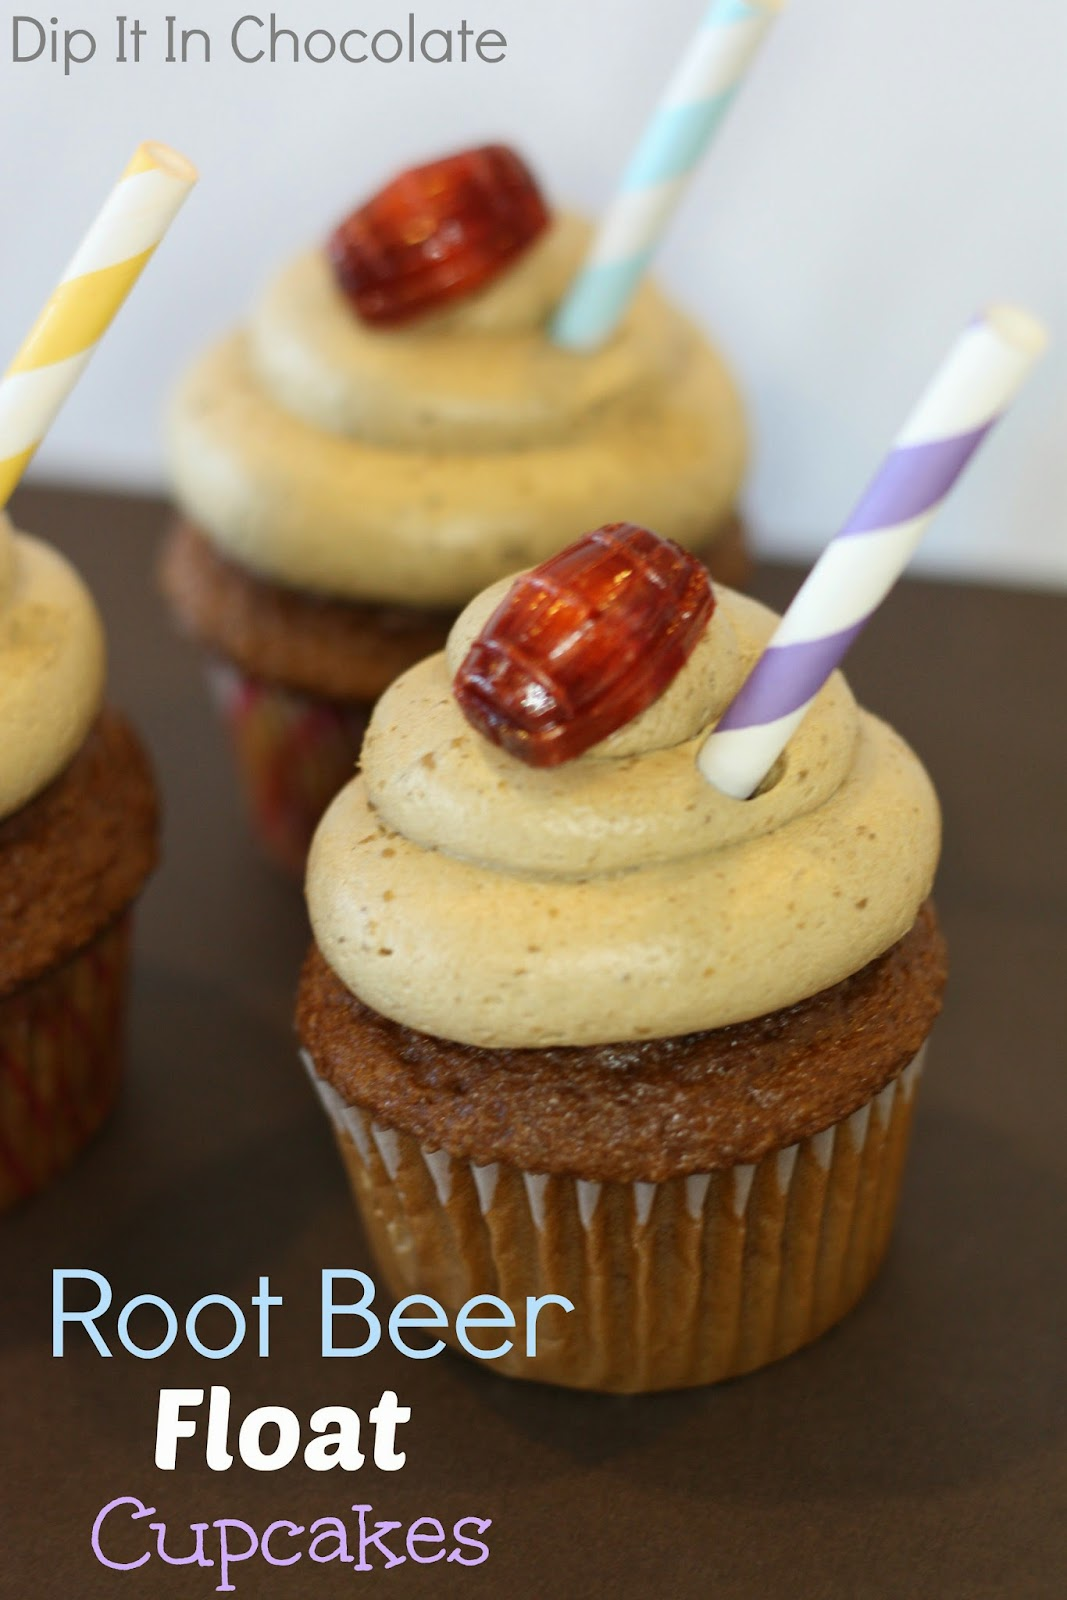 Root Beer Float Cupcakes ~ Dip it in Chocolate